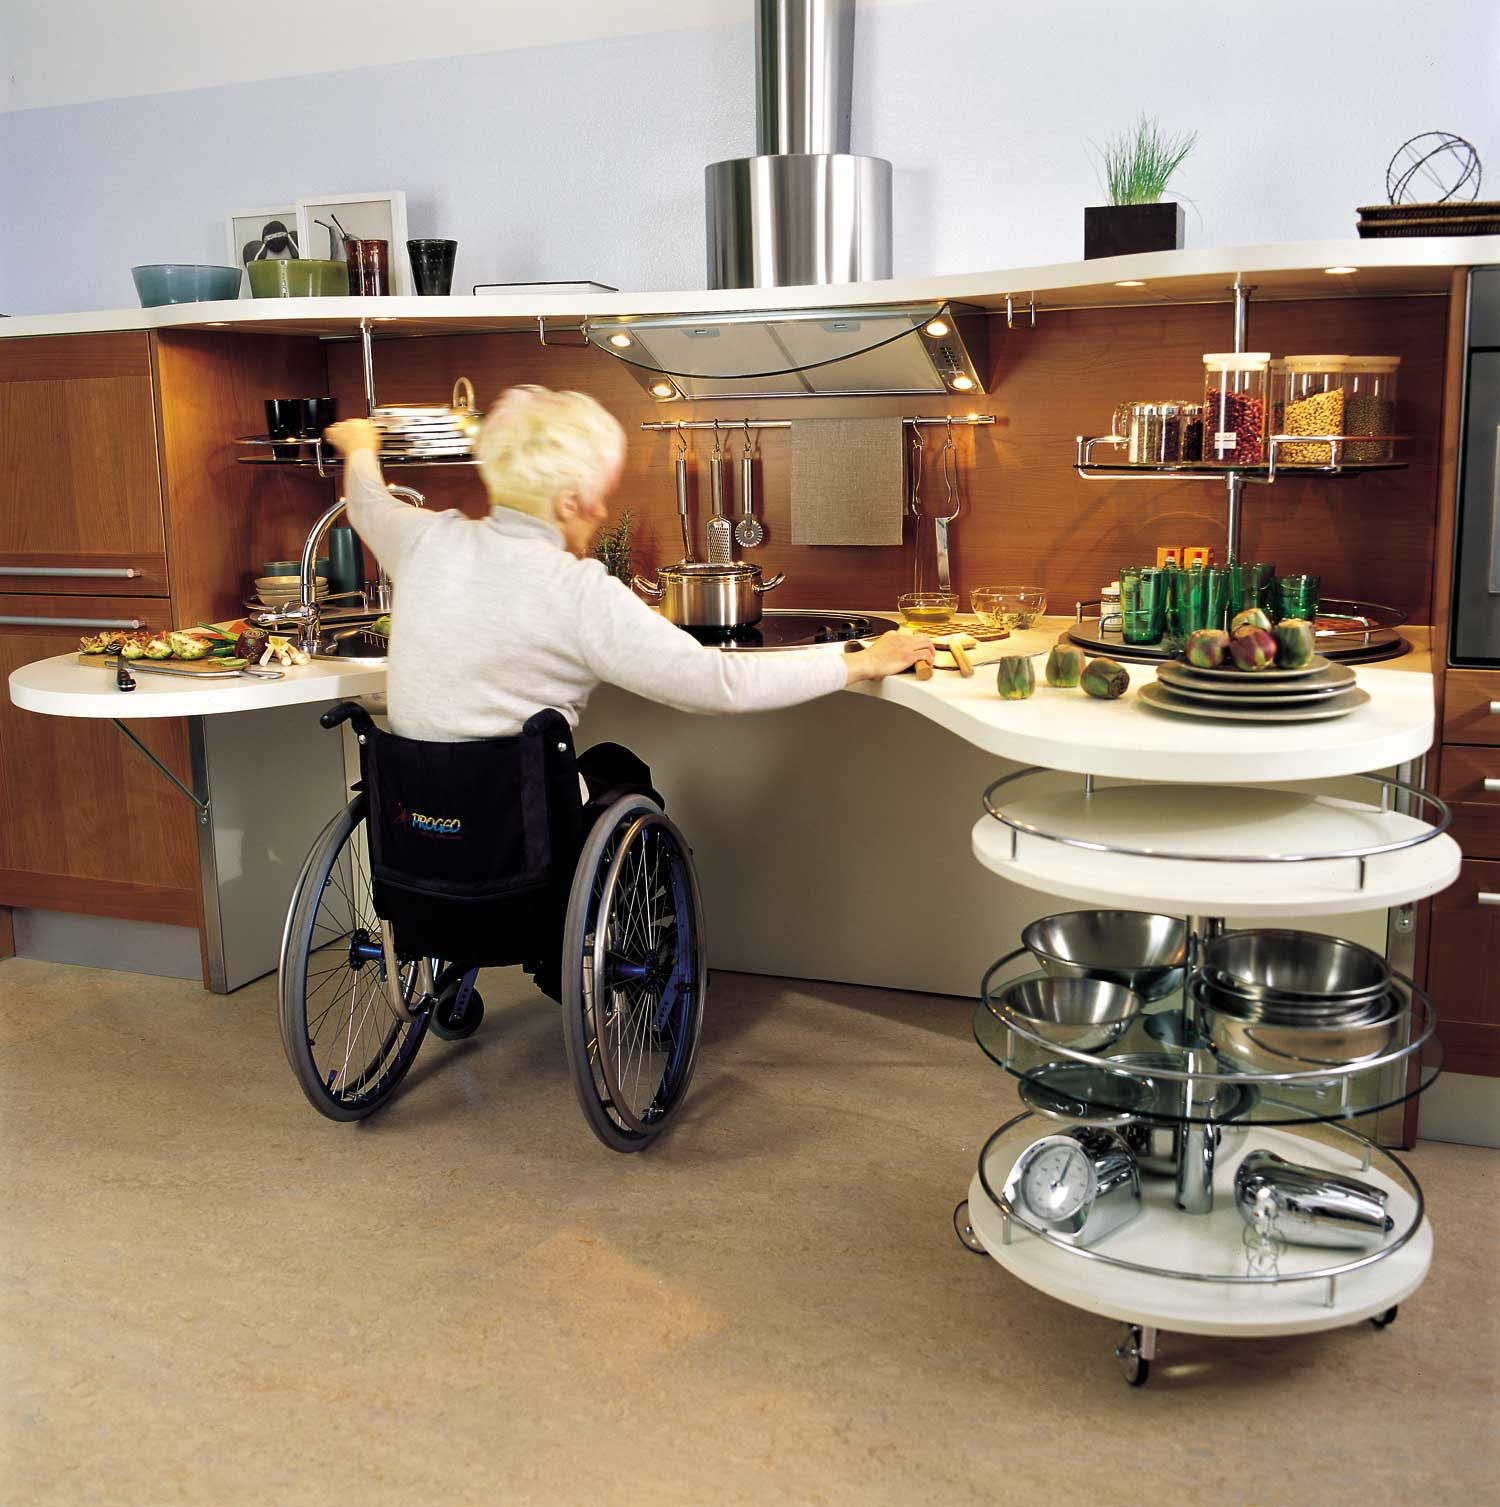 Simple sleek kitchen design for wheelchair users for Kitchen design for wheelchair user